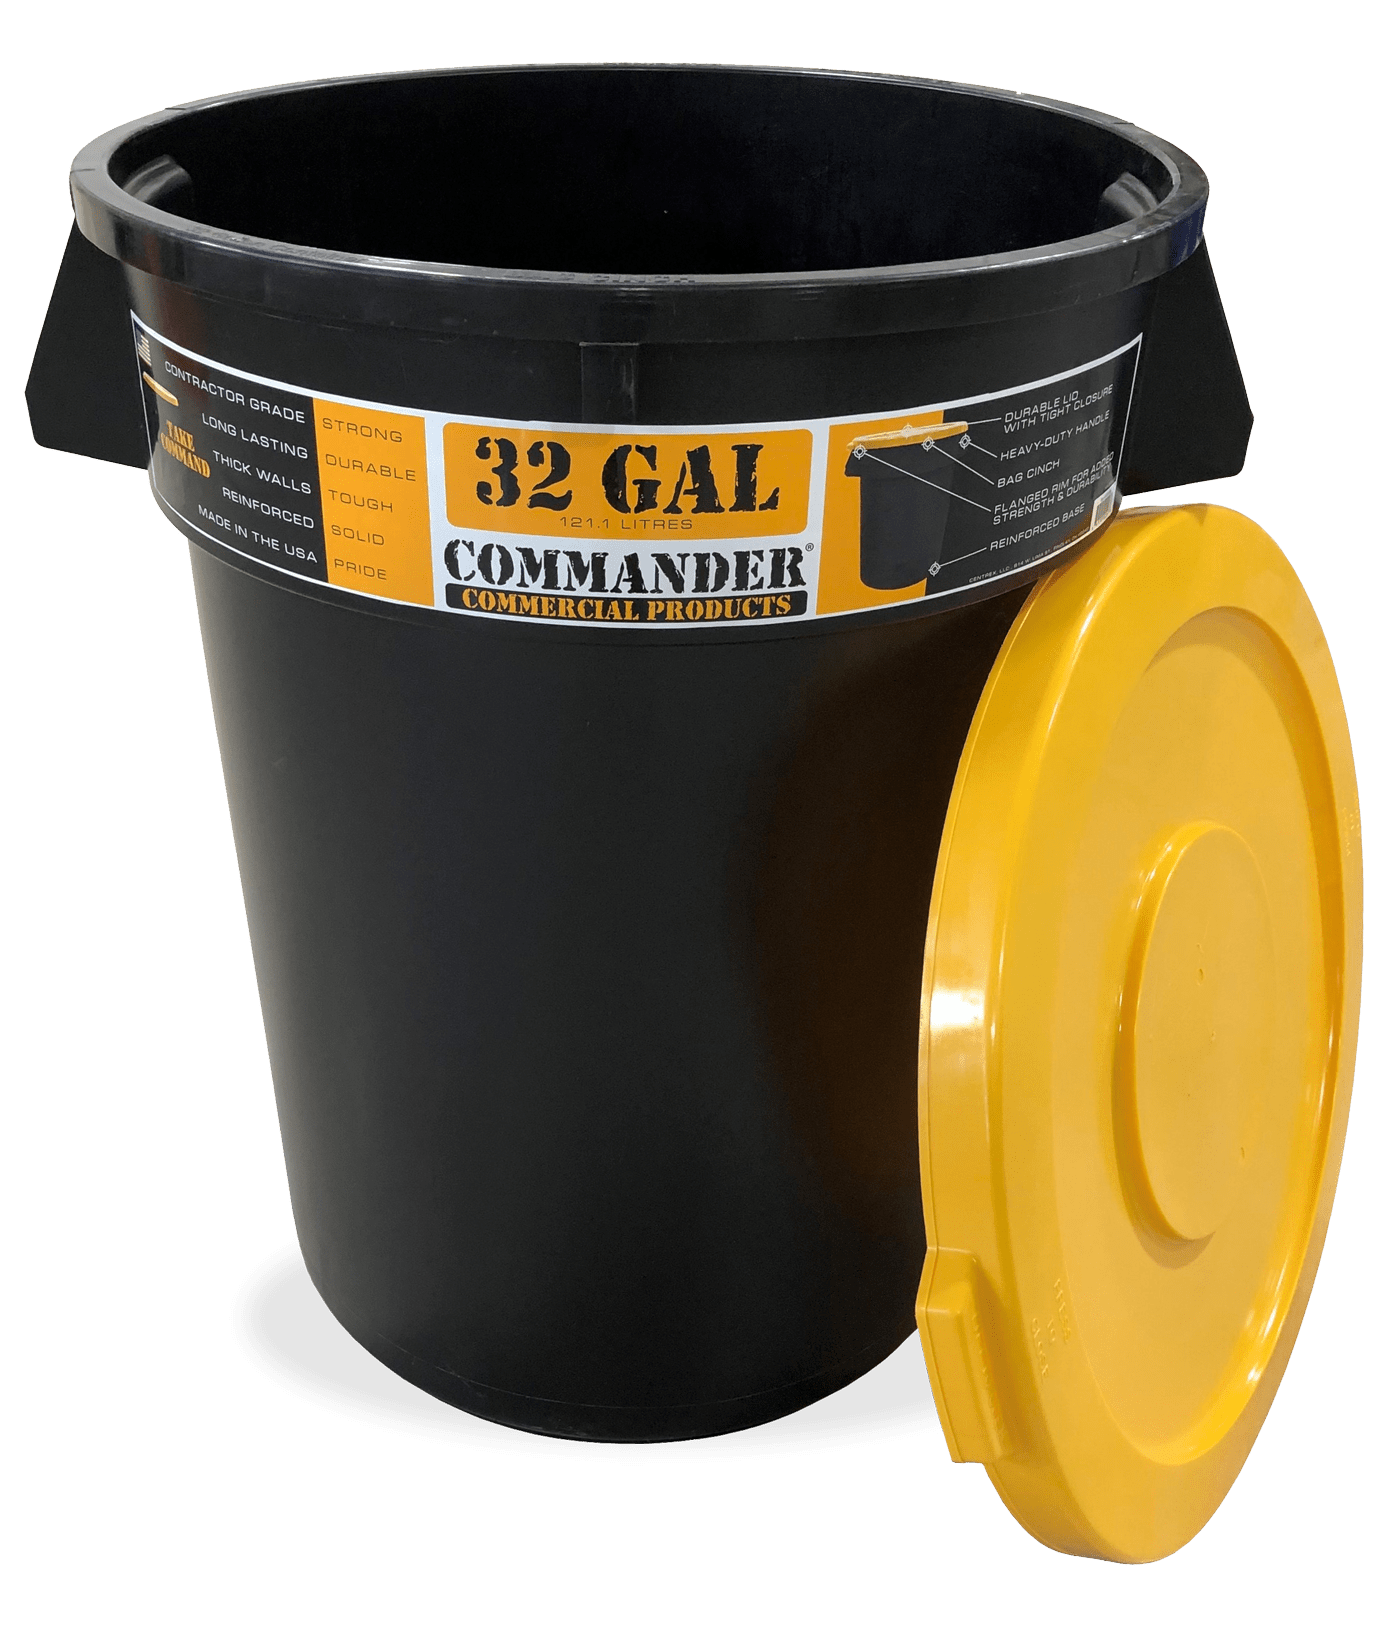 Select Lowes In-Store Only: Commander Commercial 32-Gallon Black Plastic Trash Can w/ Lid + $33 Lowes Gift Card $33 (after rebate) YMMV, AR, IL, IN, KY, MI, MO, OH, TN, PA, & WV